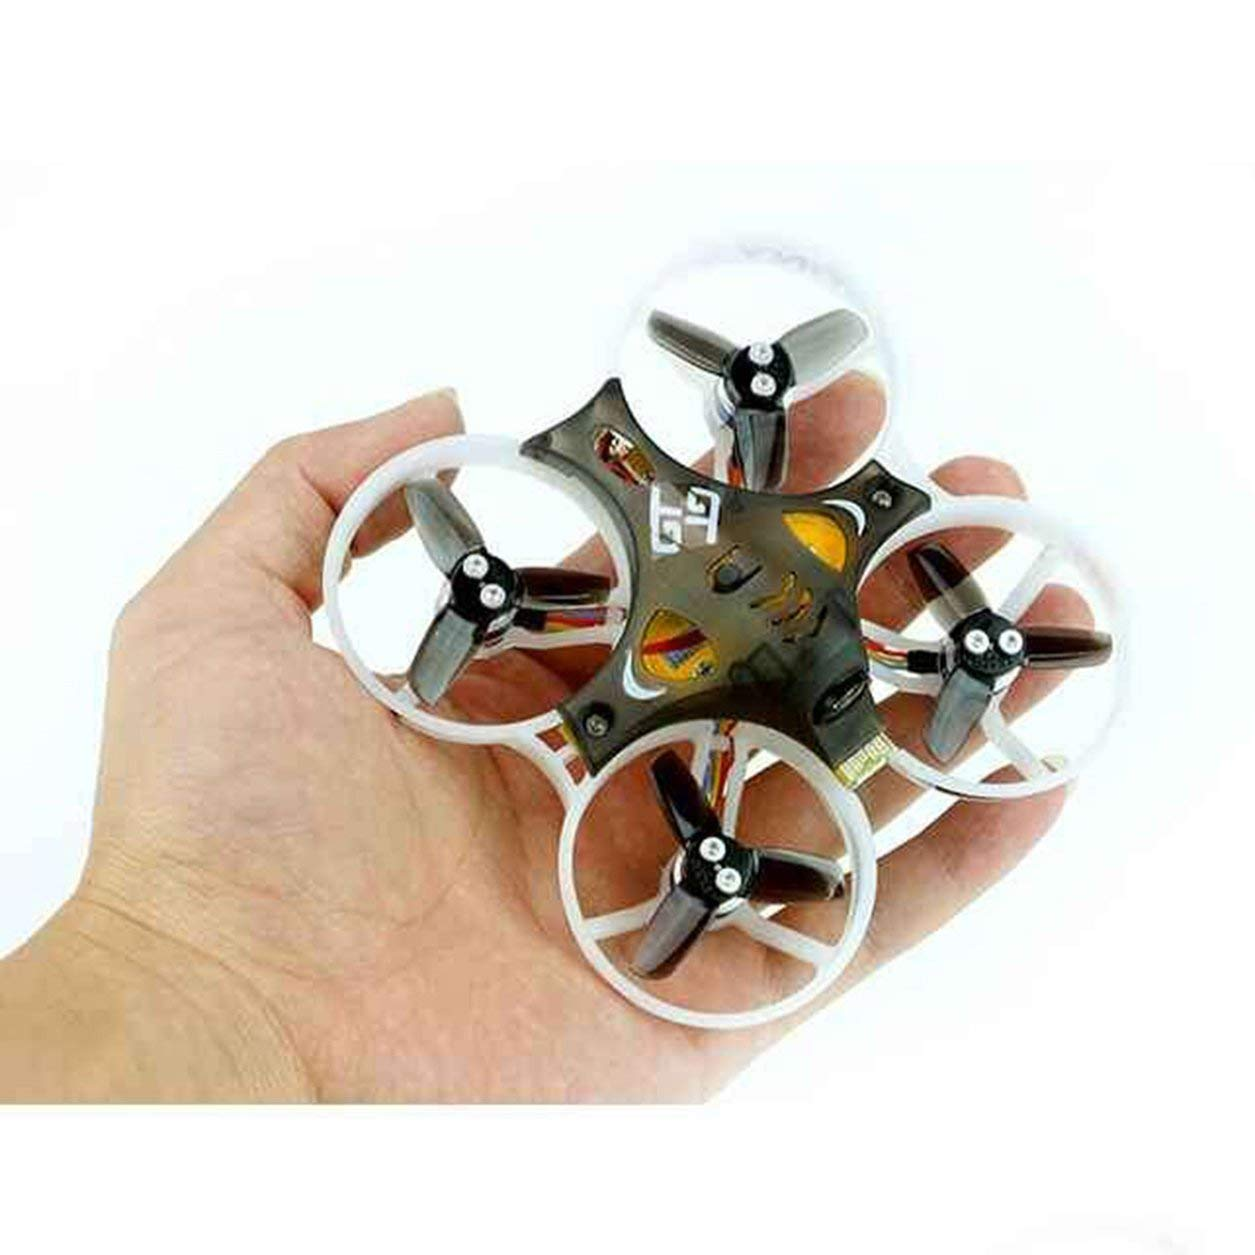 Dailyinshop LDARC Tiny Tiny Tiny GT8 87.6mm 5.8G 2S Brushless 800TVL Kamera Tiny Micro FPV RC Drone 48ee38